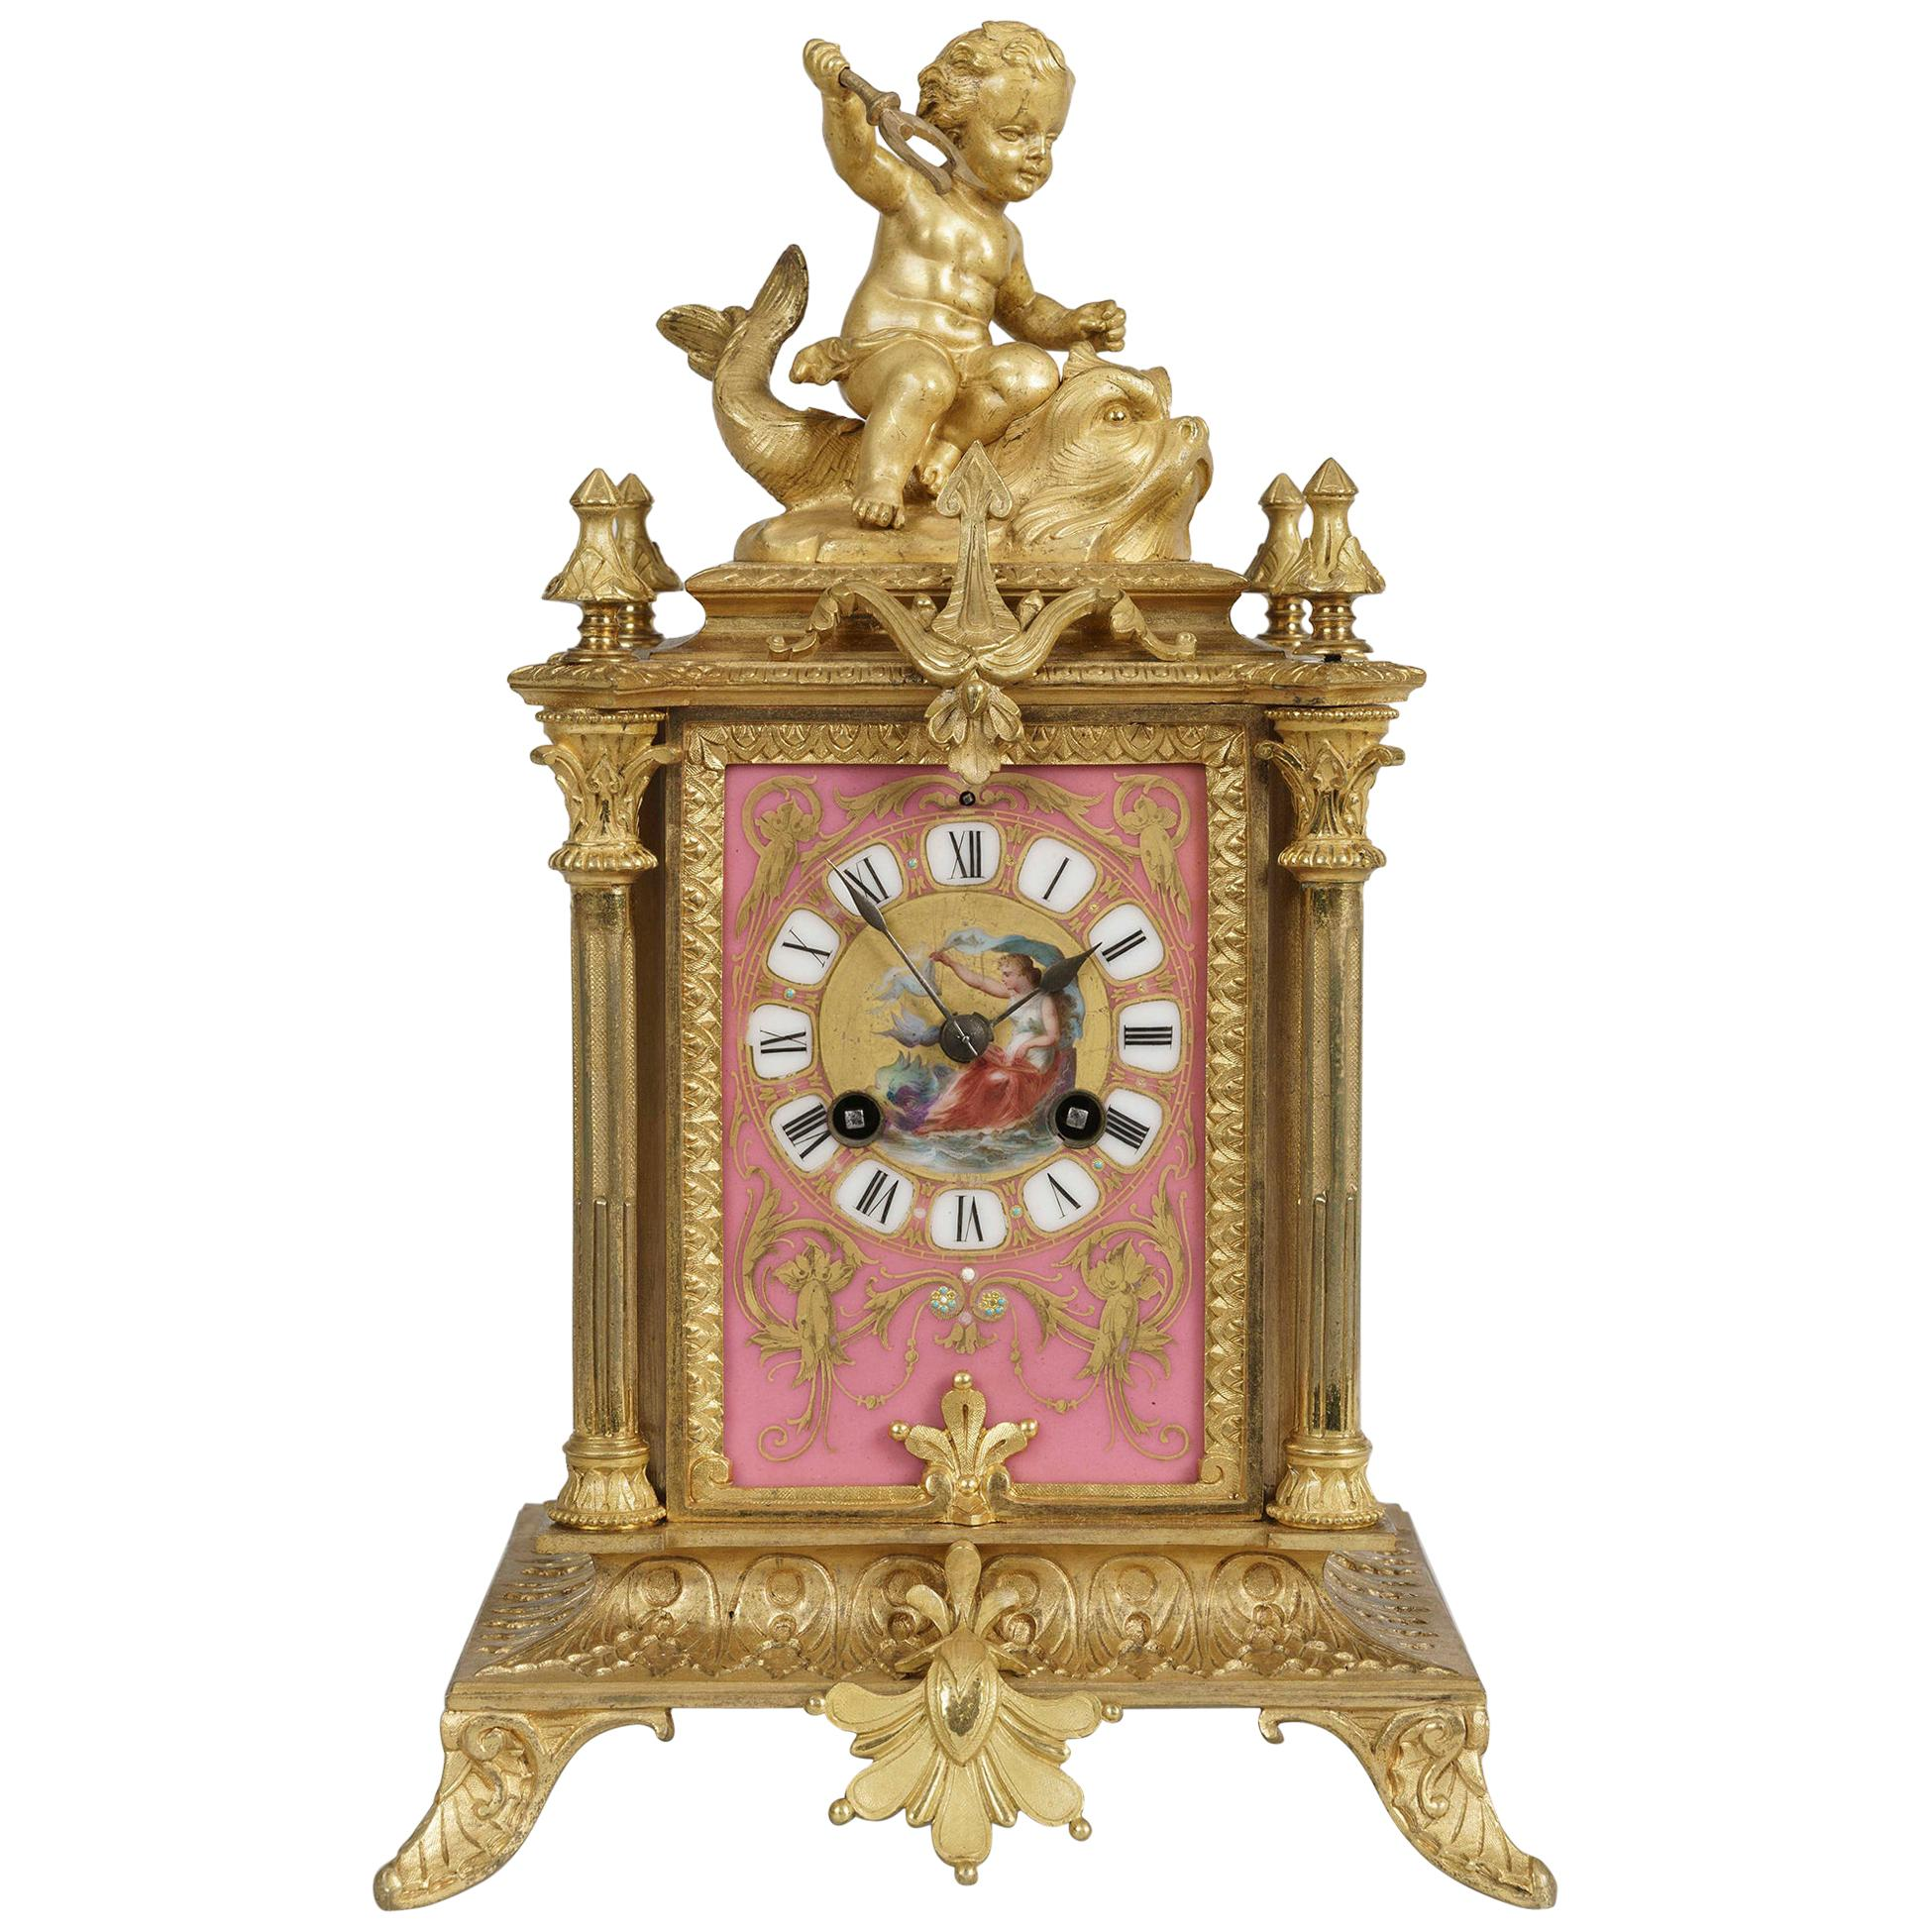 19th Century French Pink Porcelain Clock by Japy Fréres in the Louis XVI Manner